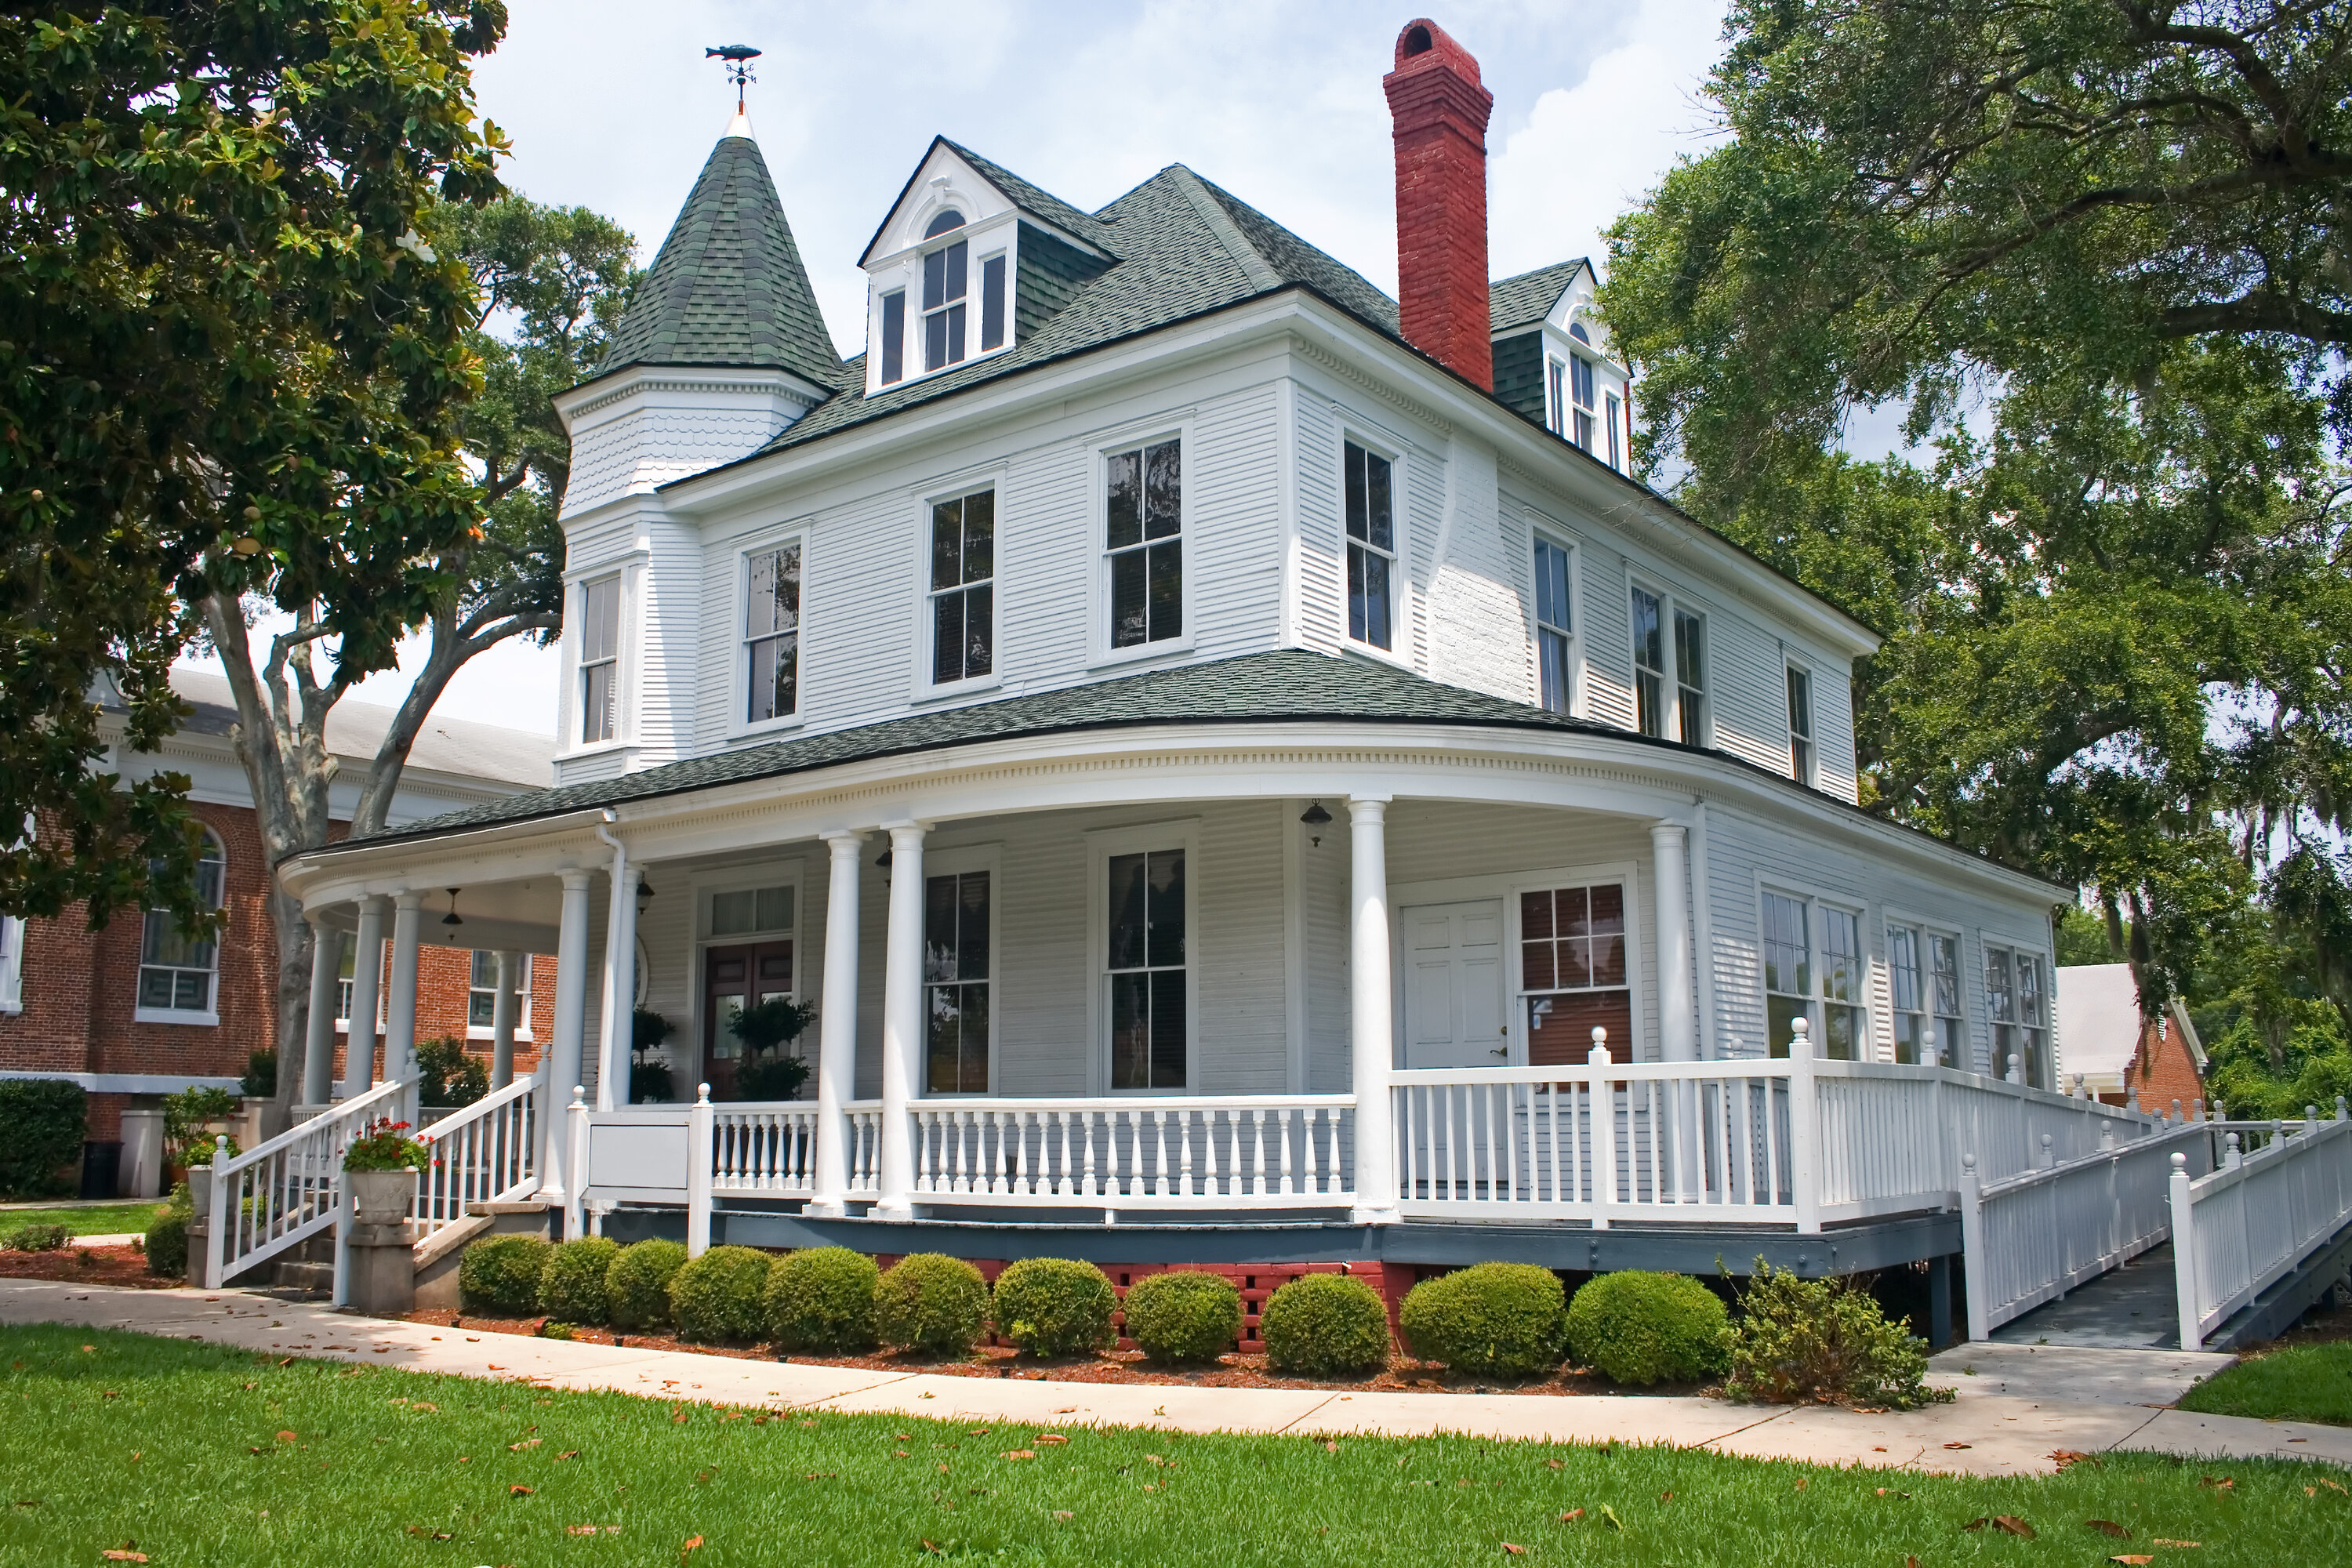 A 2 story white victorian southern home with a wrap around front porch, American flag, red chimney, and a grass front Lon with a sidewalk and bushes